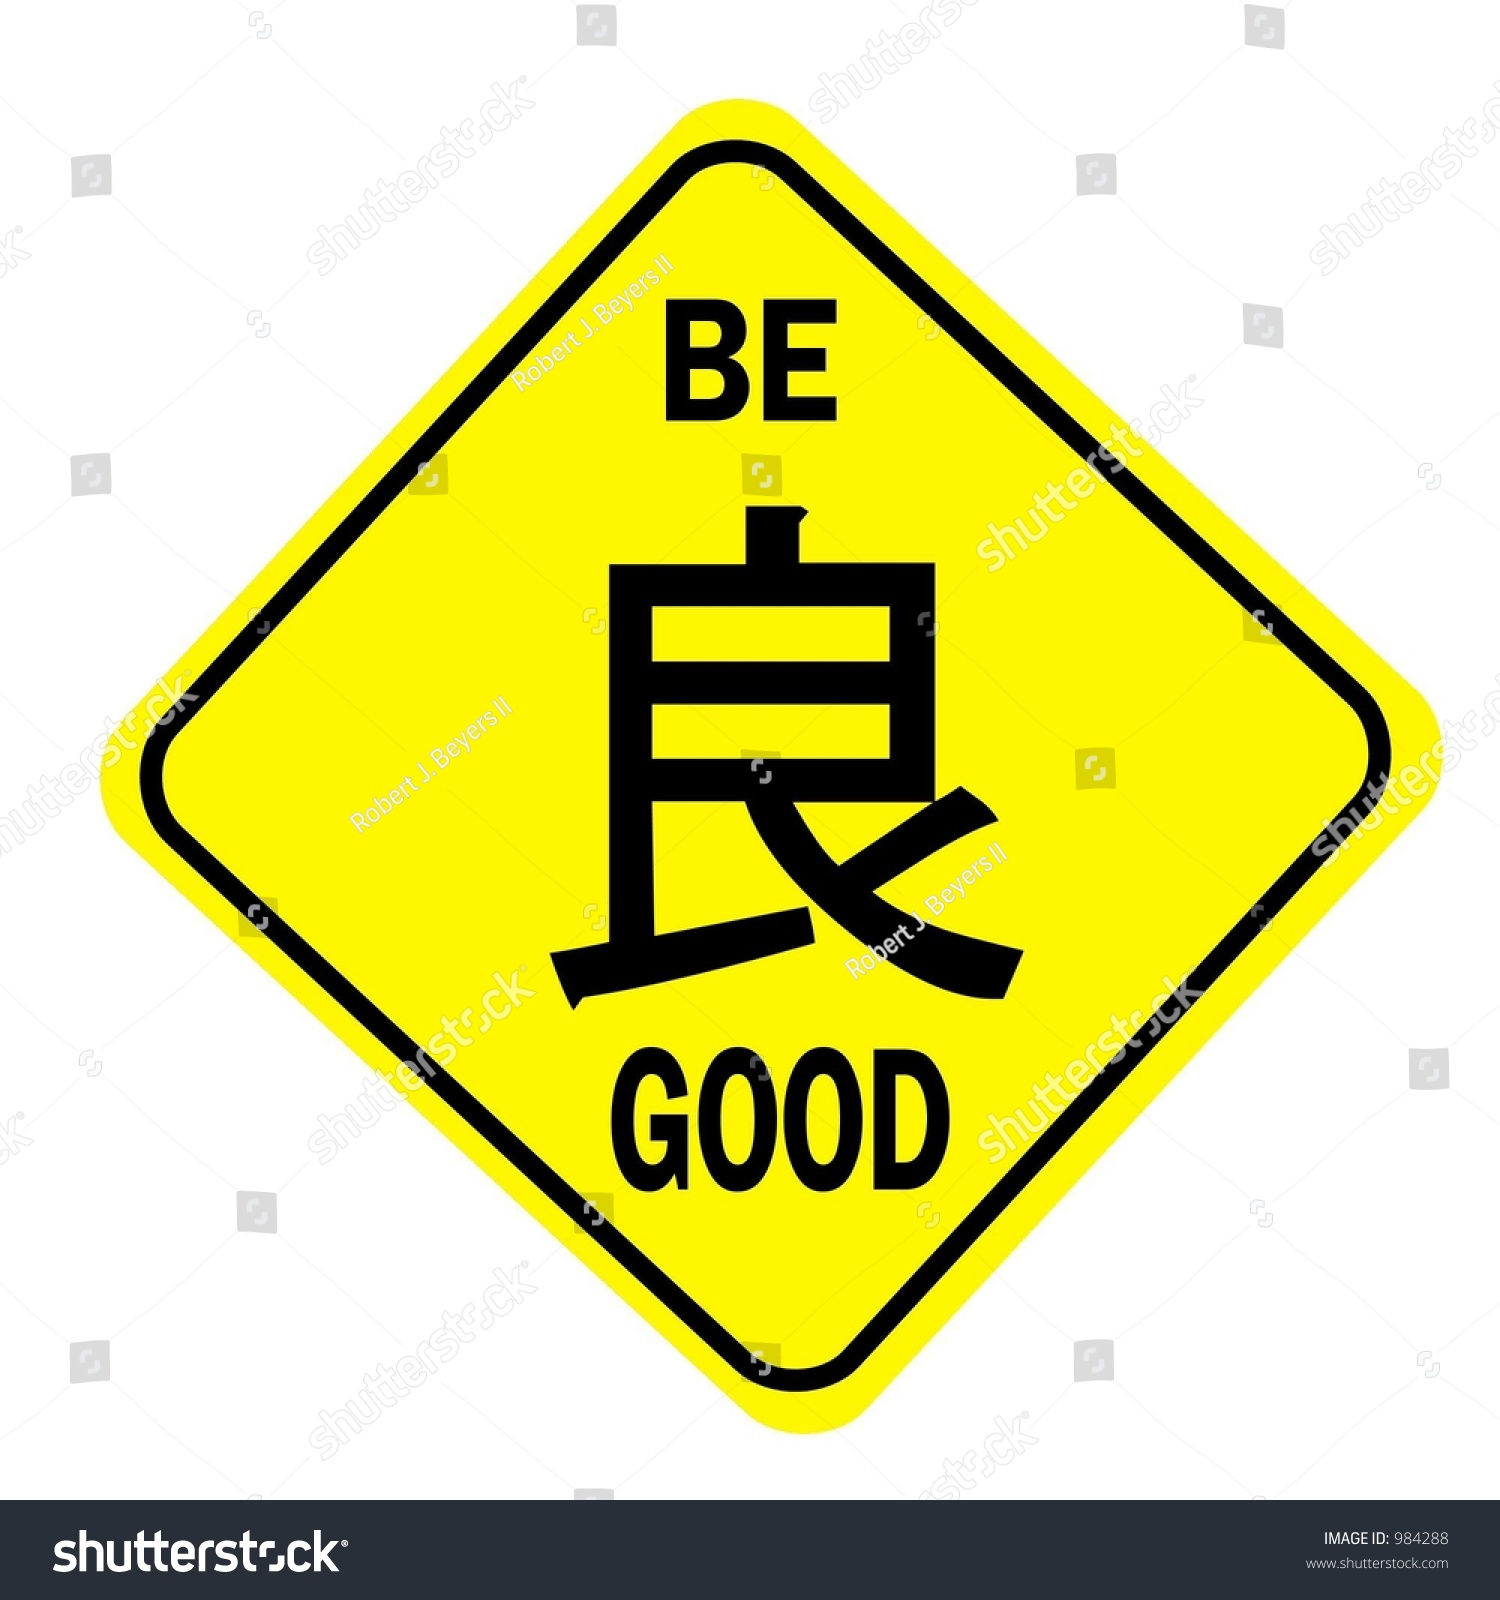 Royalty Free Stock Illustration Of Be Good Message Japanese Symbol